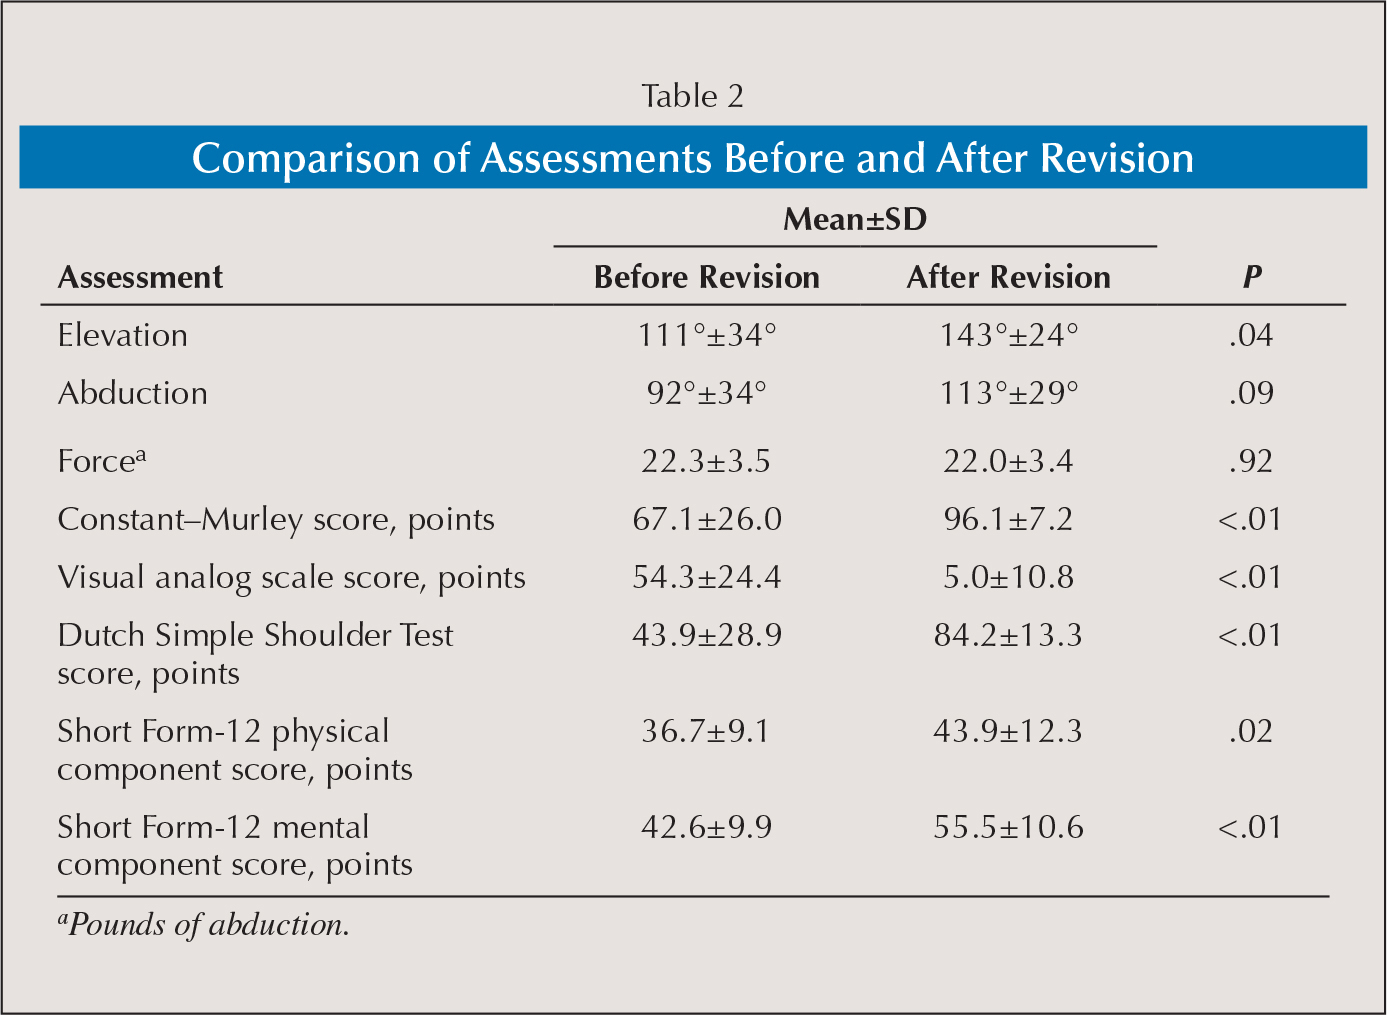 Comparison of Assessments Before and After Revision